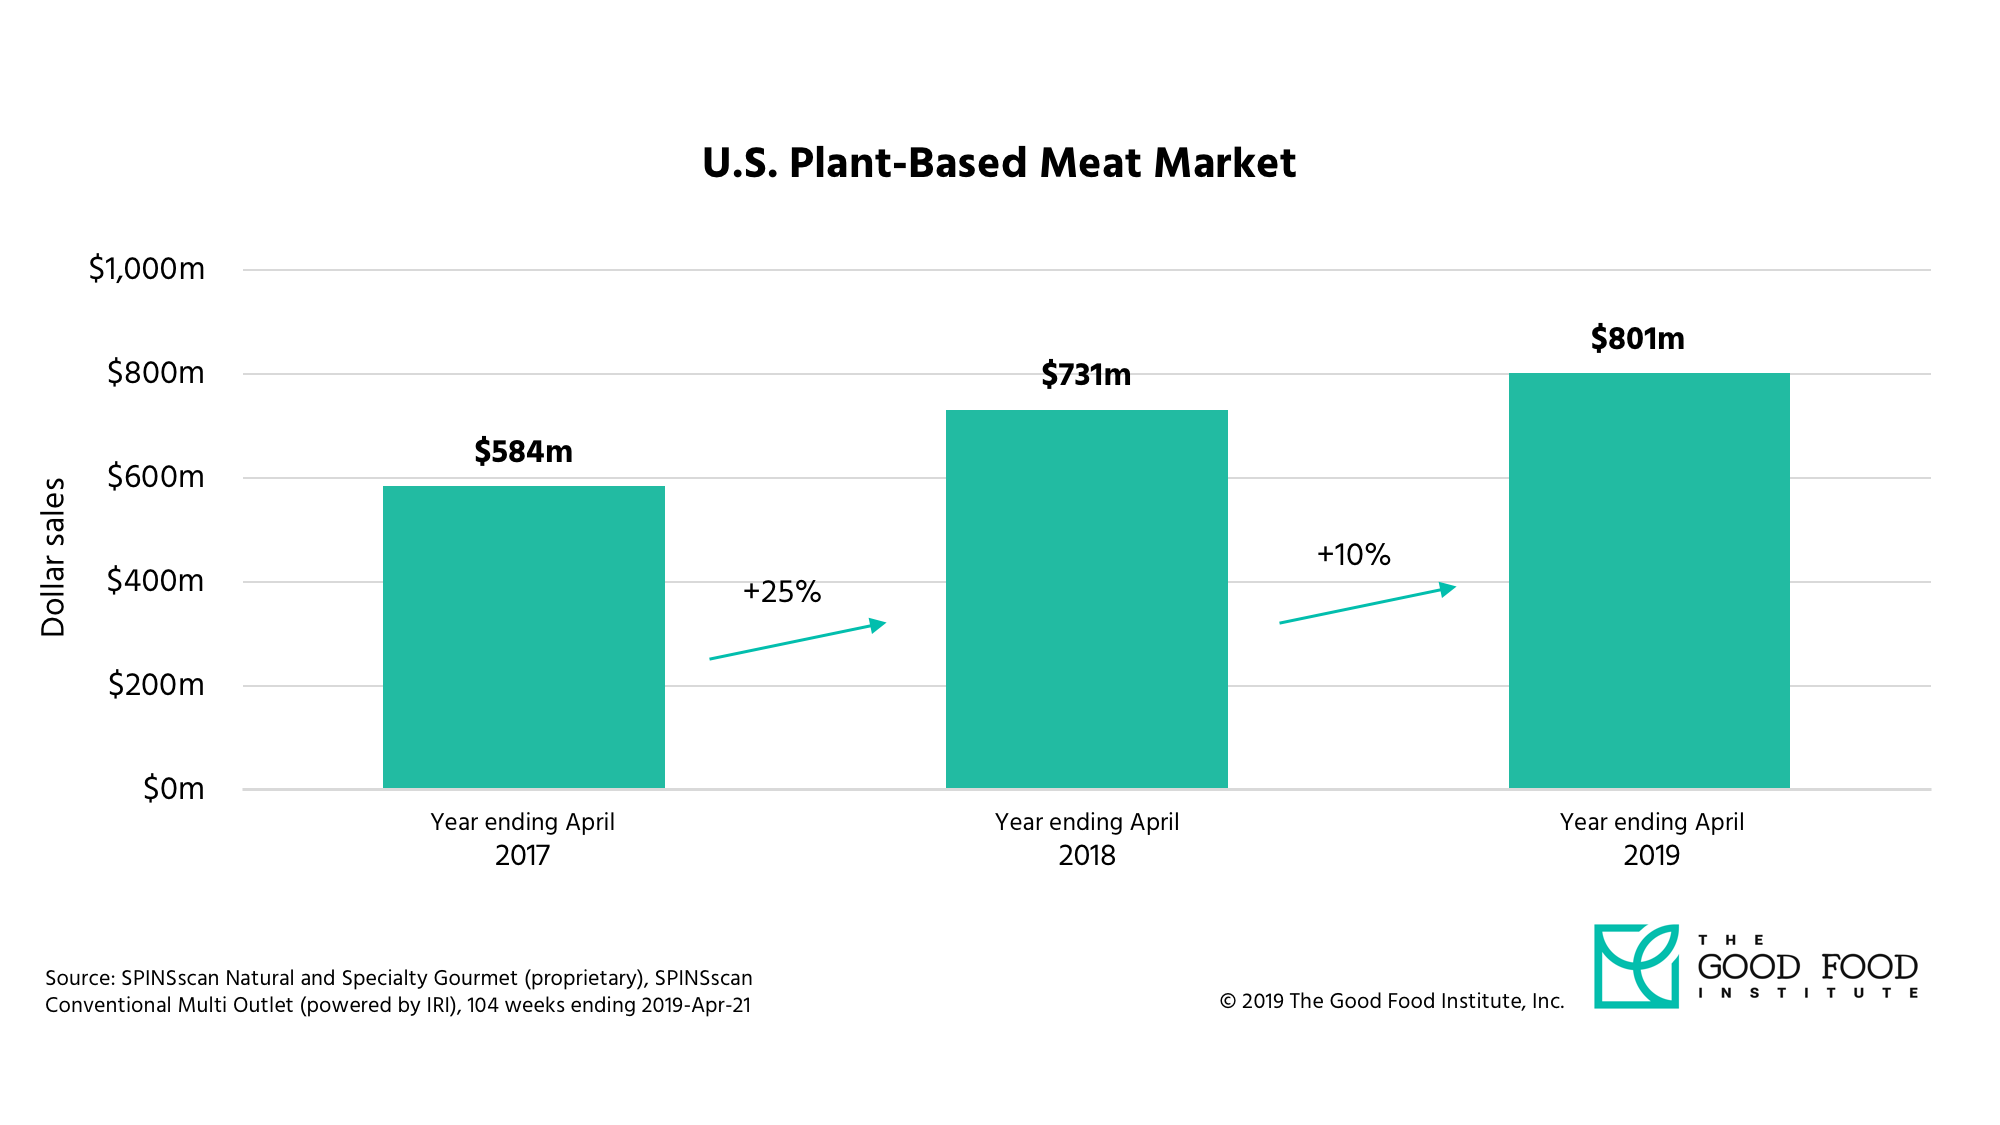 U S  Plant-Based Market Overview - New SPINS retail sales